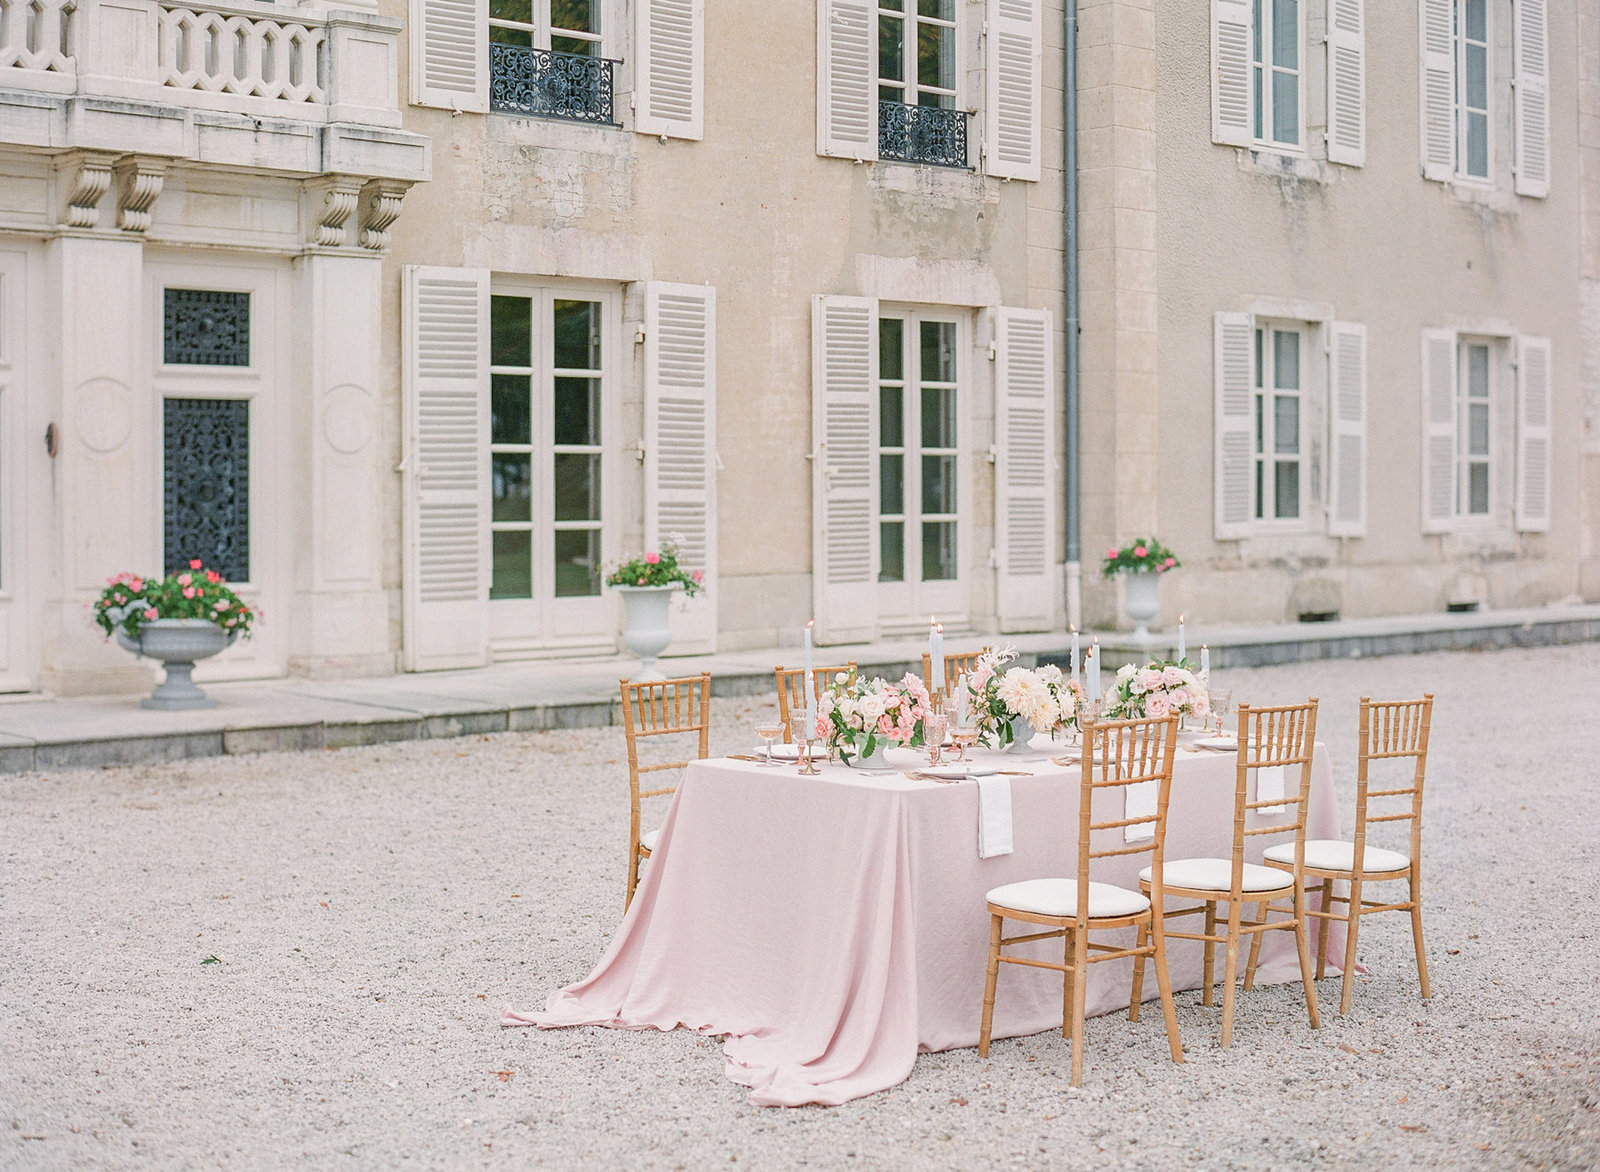 Molly-Carr-Photography-Paris-Film-Photographer-France-Wedding-Photographer-Europe-Destination-Wedding-80